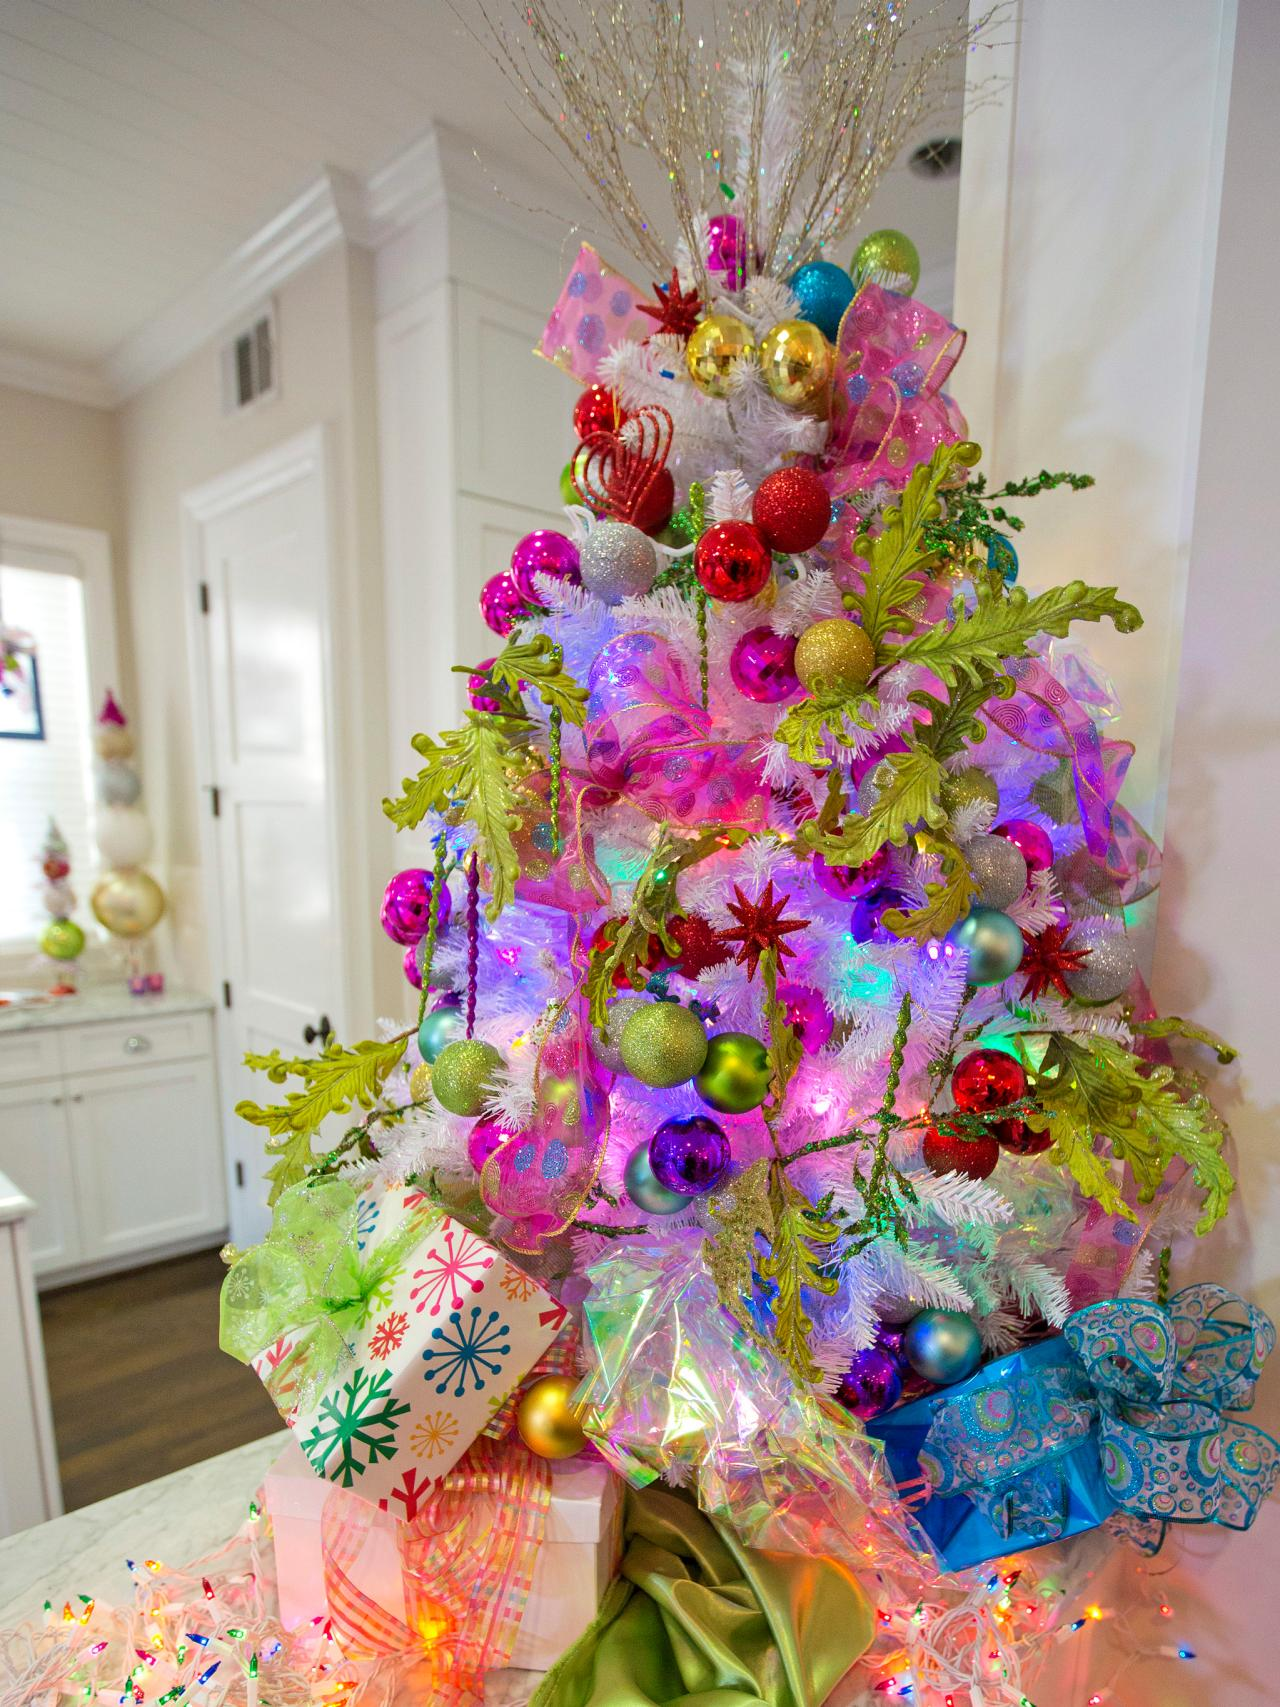 Colorful Christmas Tree Decorations.45 Colorful Christmas Tree Decorations Ideas Decoration Love